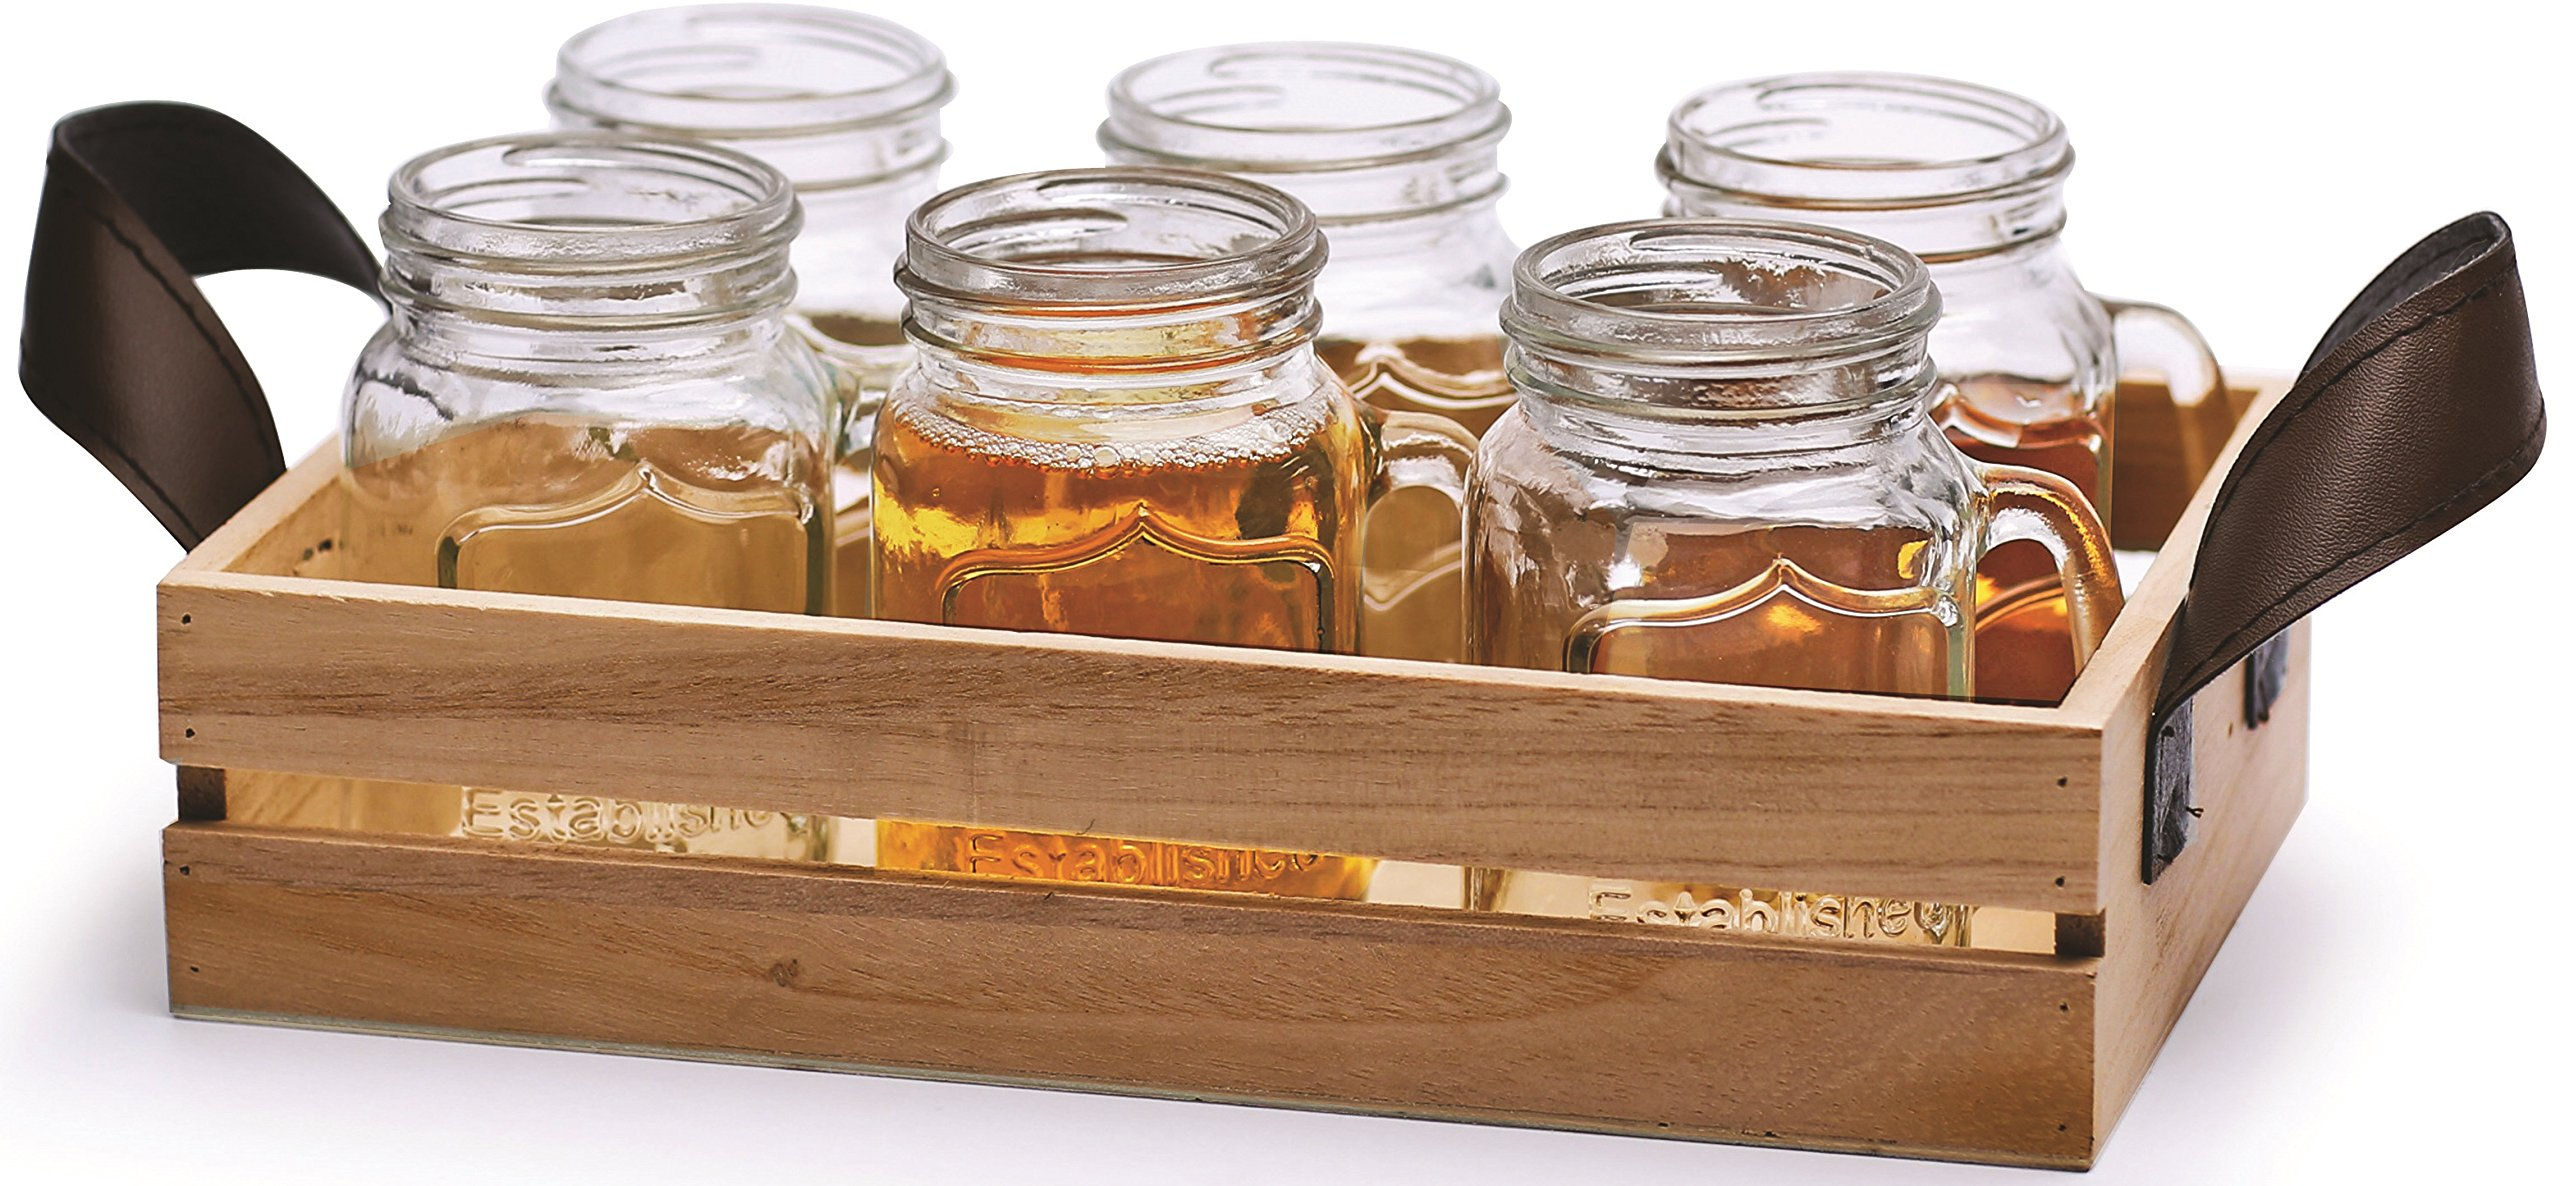 Circleware Country 5 Ounce Mini MUG Clear Glass Shot Glass Set with Glass Handles and Wooden Tray, 7 Piece Glassware Drink Cup Set